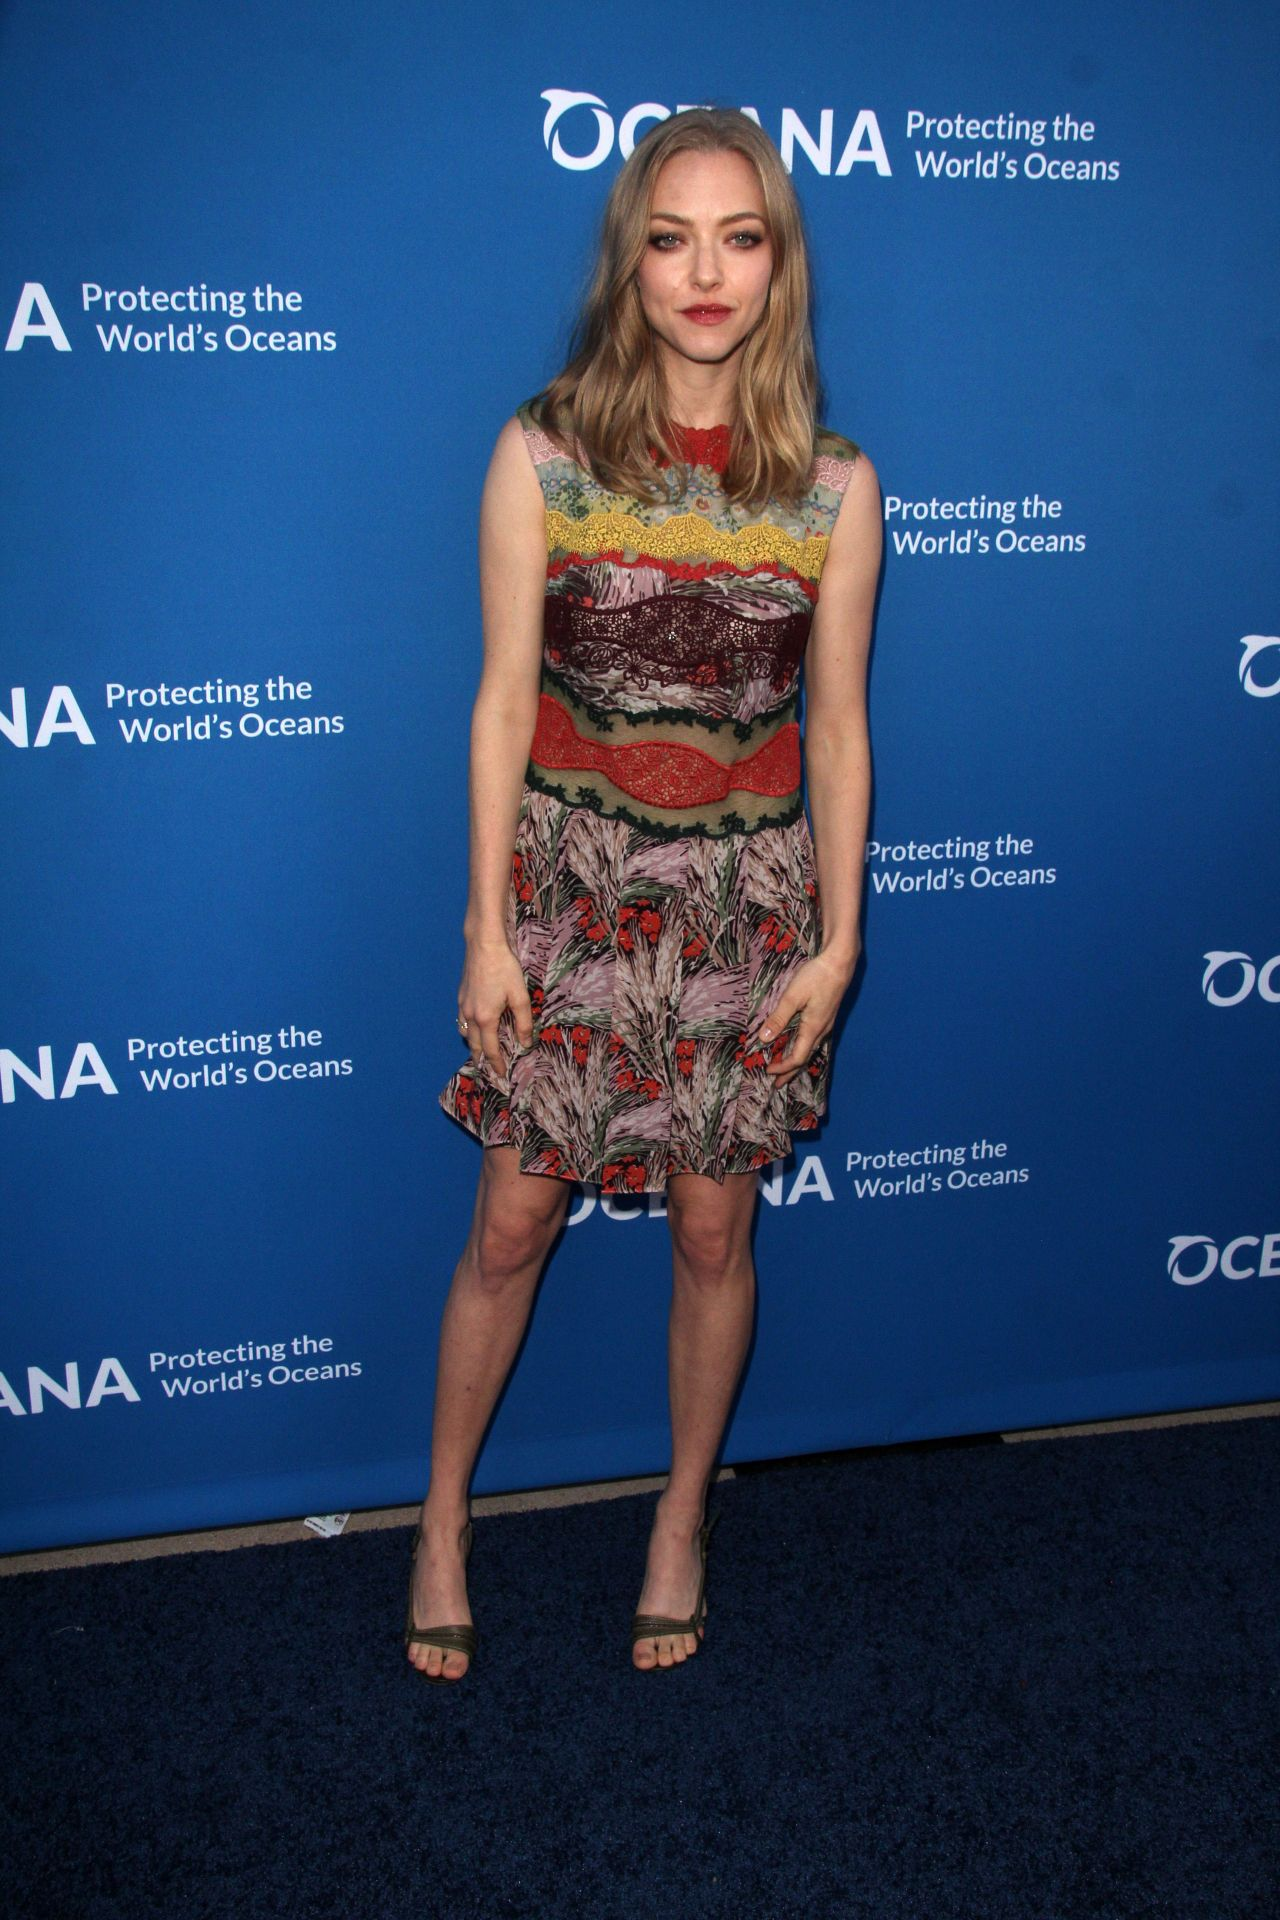 amanda-seyfried-oceana-concert-for-our-oceans-in-beverly-hills-september-2015_1